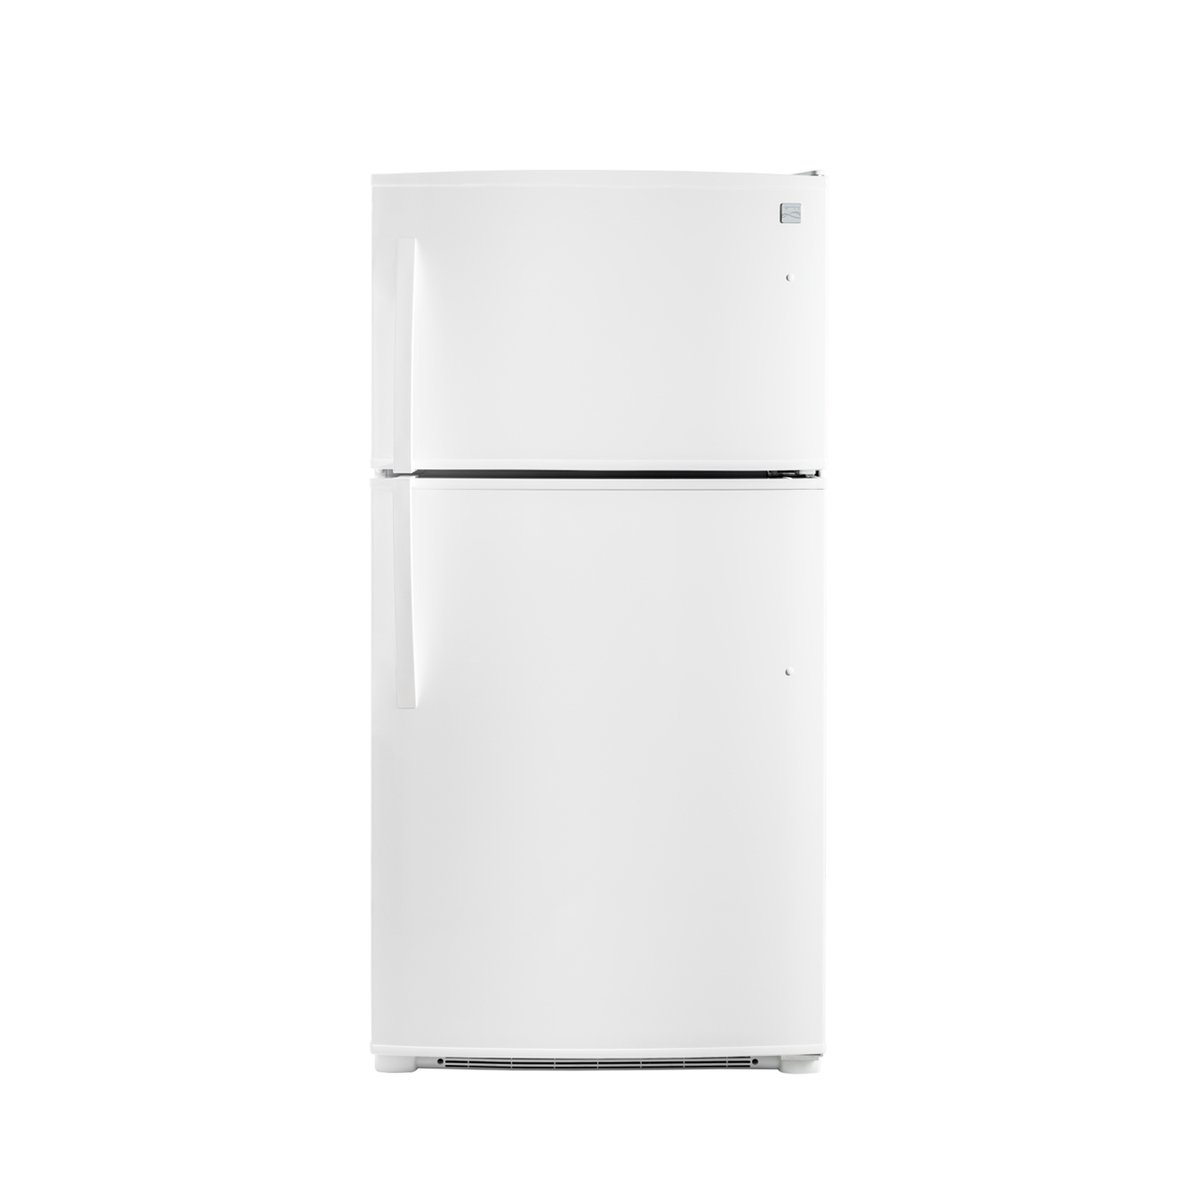 Amazon.com: Kenmore 61212 20.8 cu.ft. Top-Freezer Refrigerator with LED  Lighting in White, includes delivery and hookup: Appliances